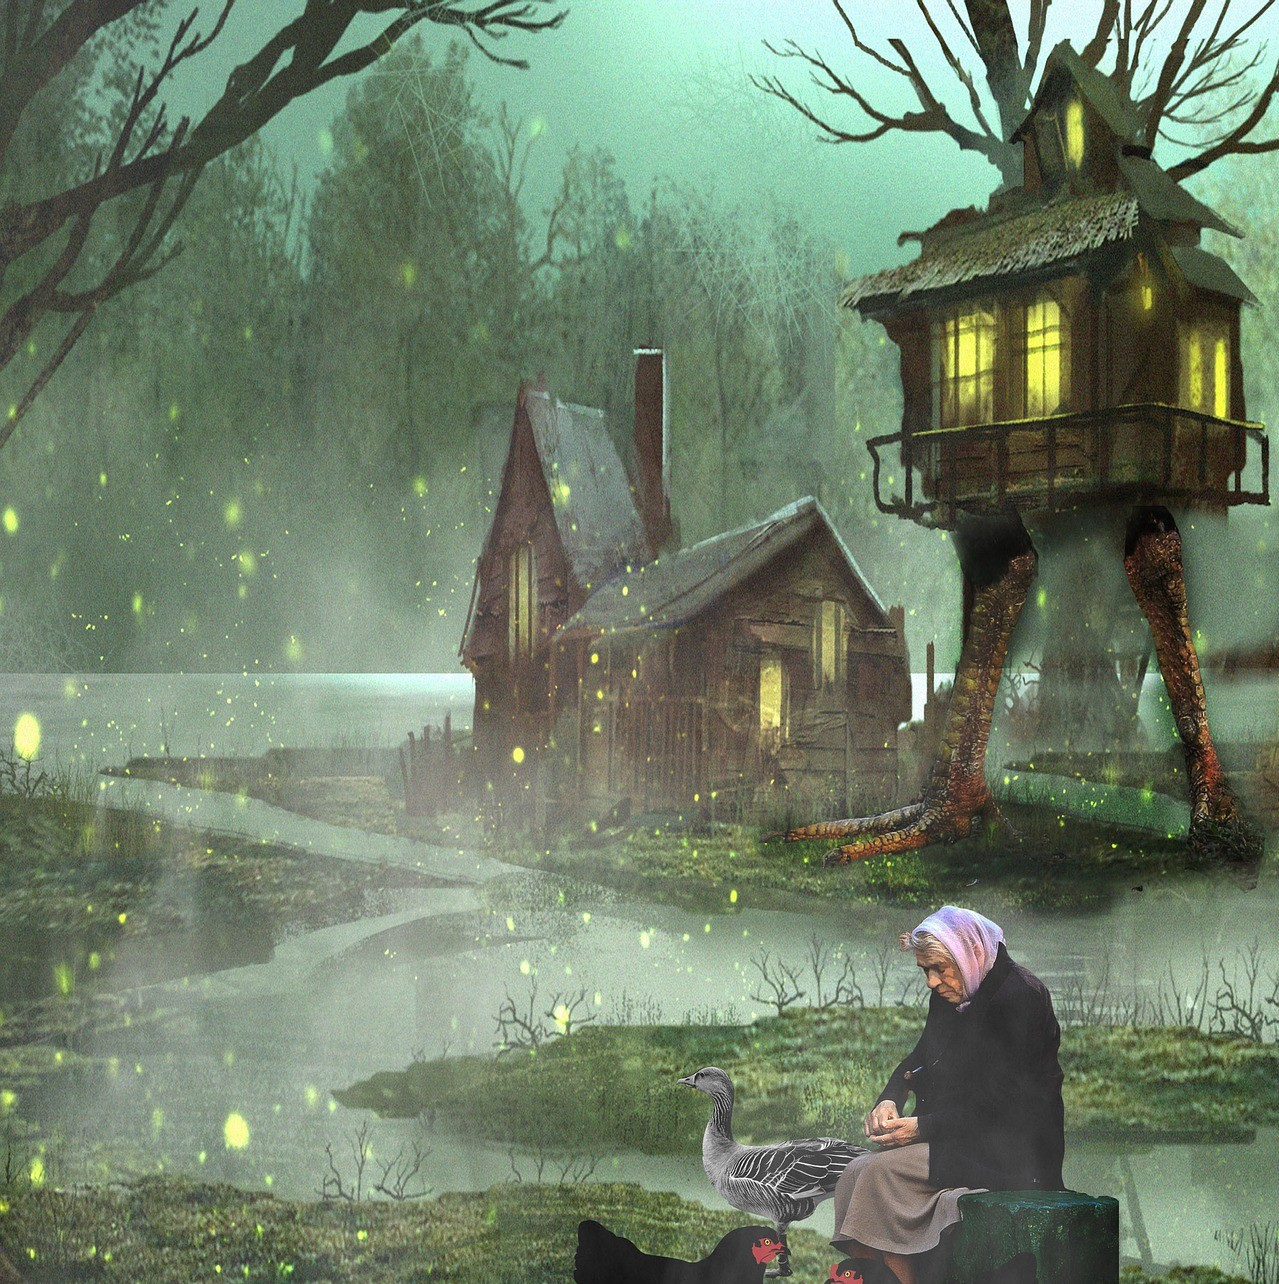 An old woman feeding chickens in front of her hut on chicken legs in the woods